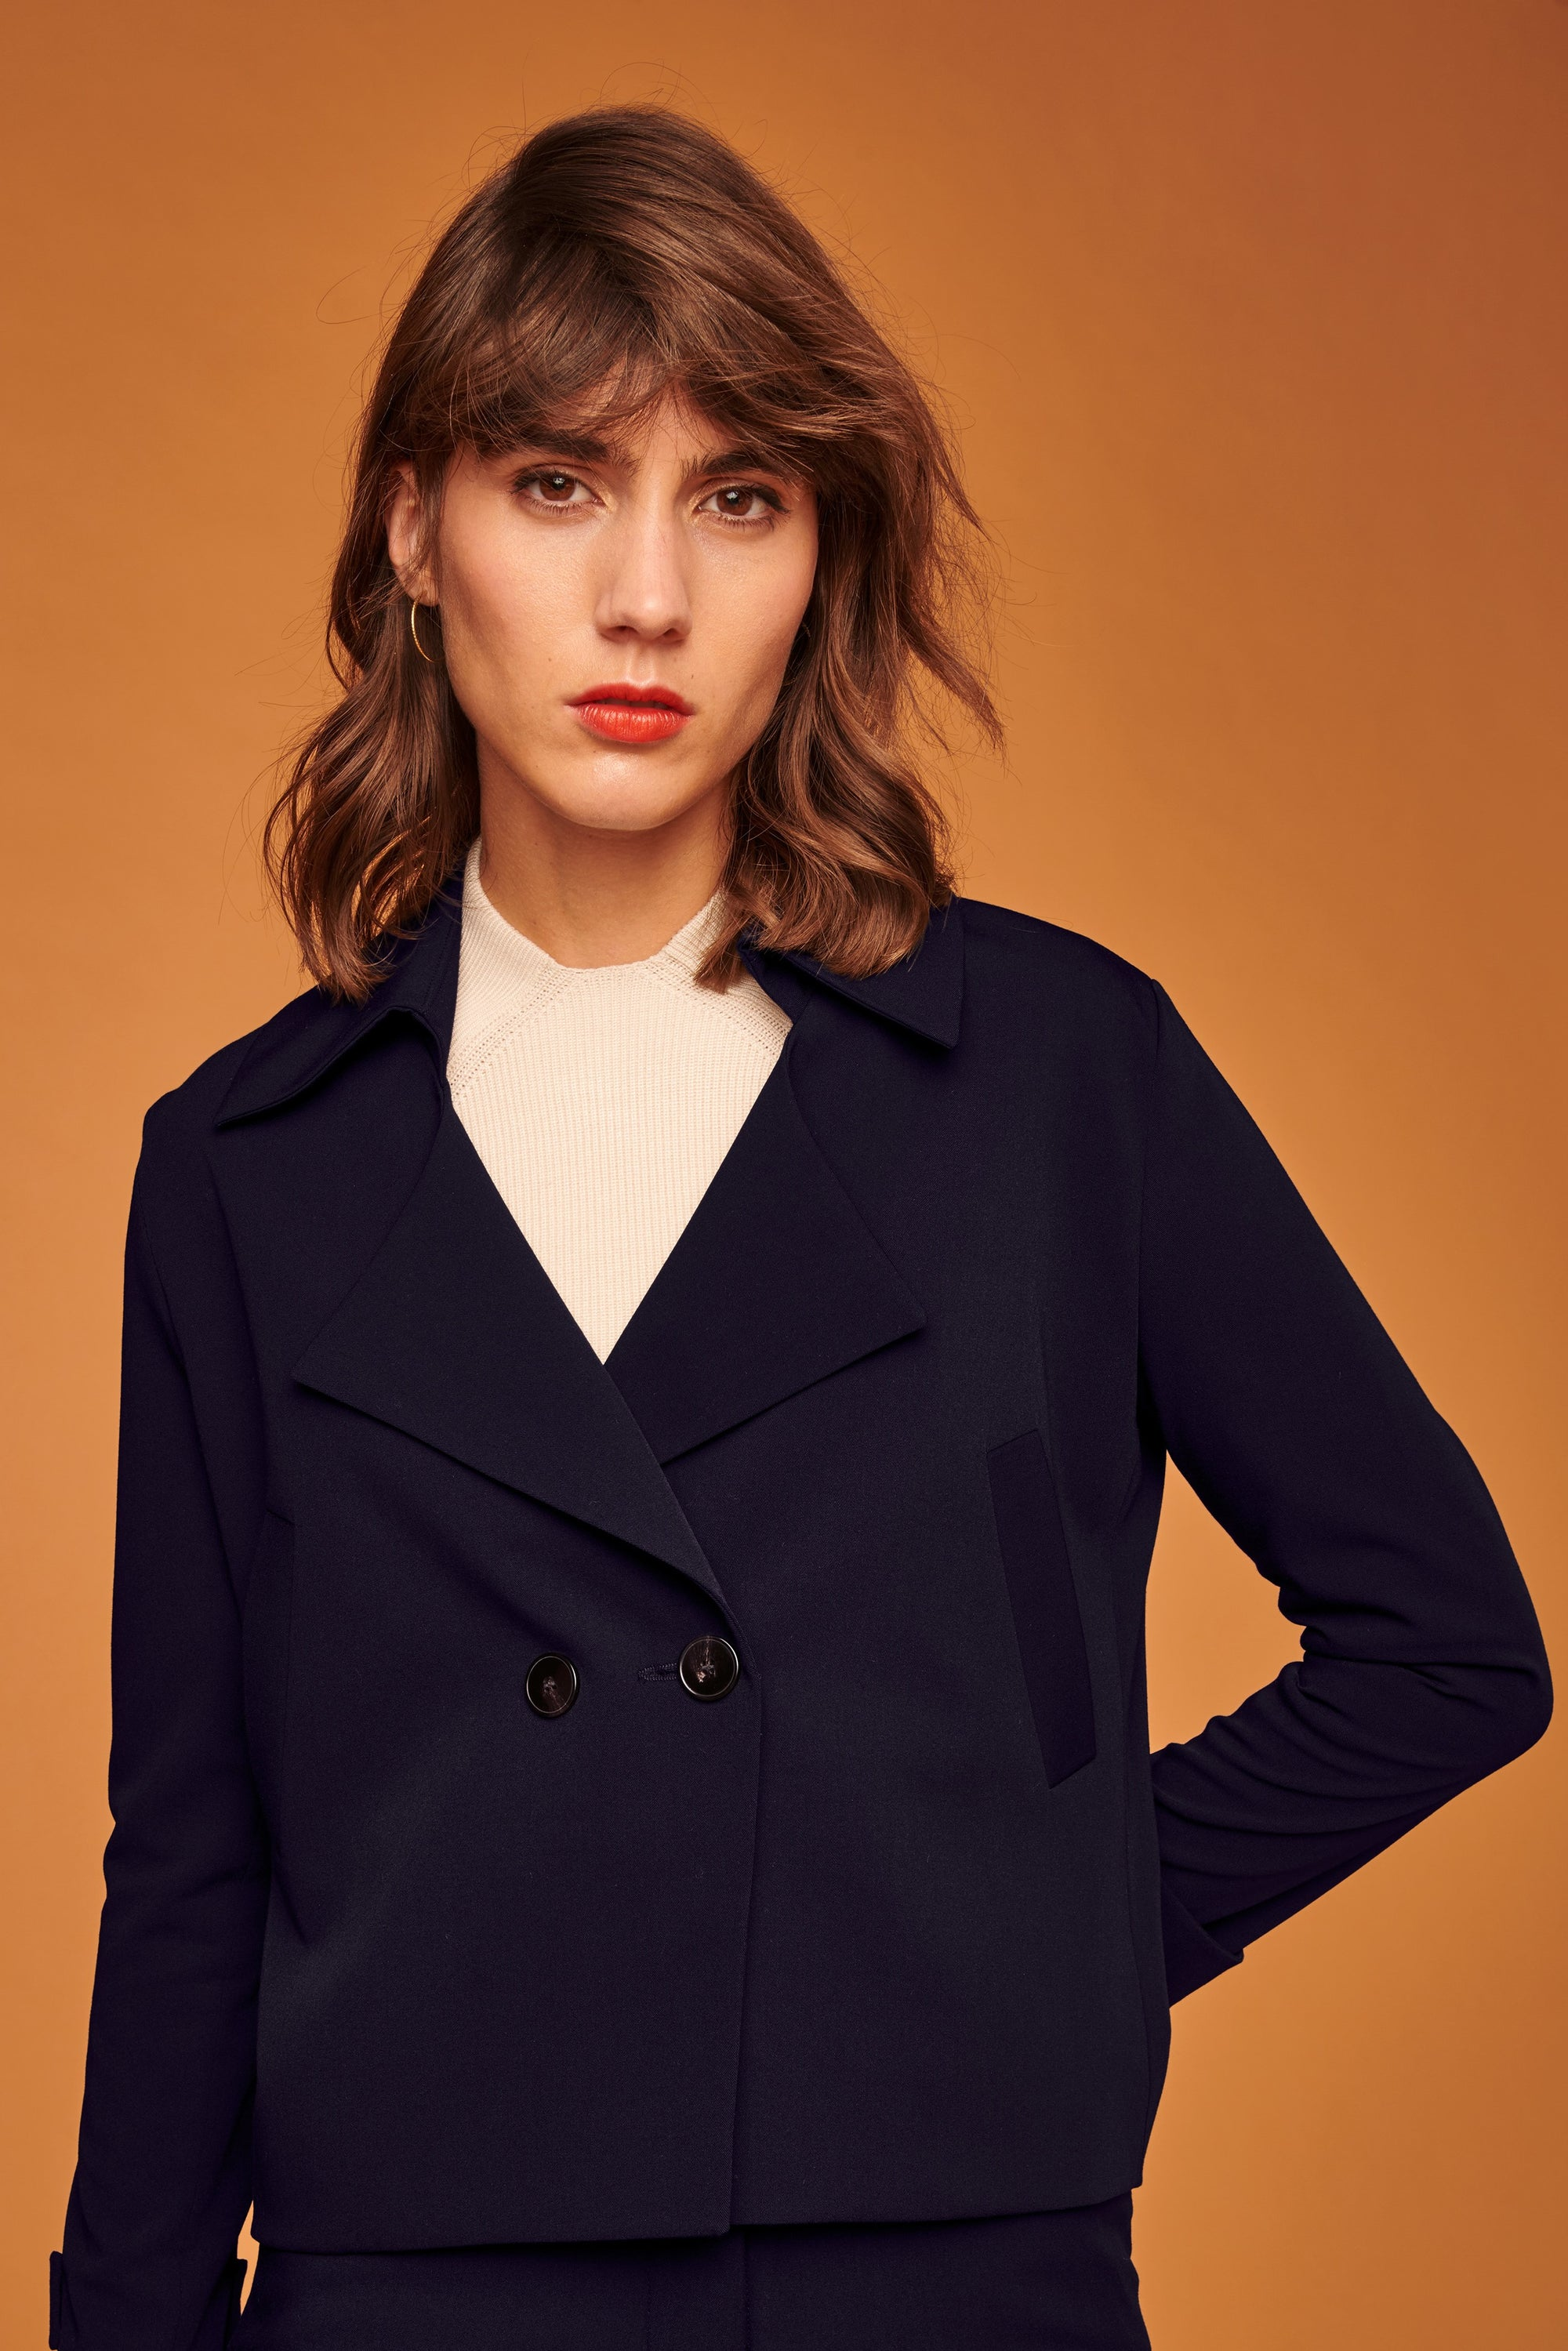 The Lovelace 'Jazer' (Jacket-Blazer)